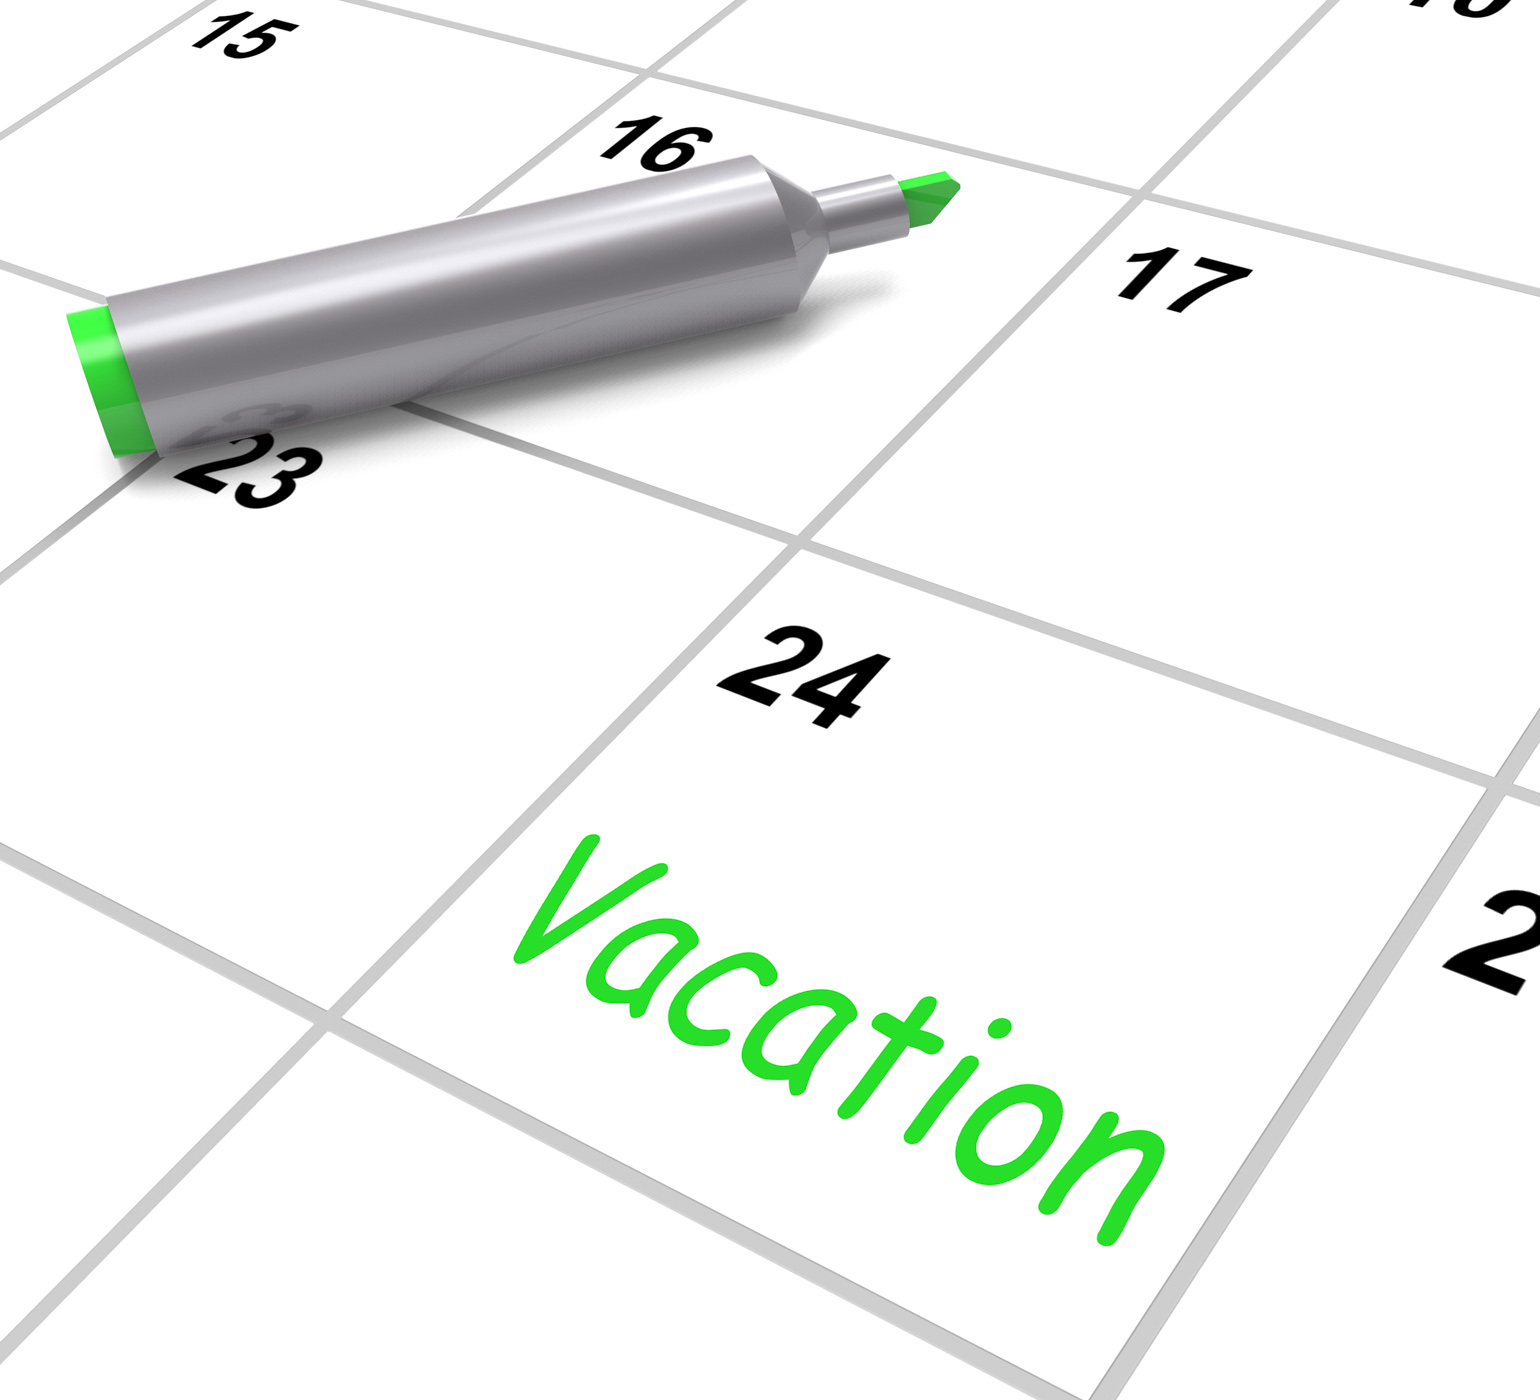 Vacation calendar shows day off work or holiday photo